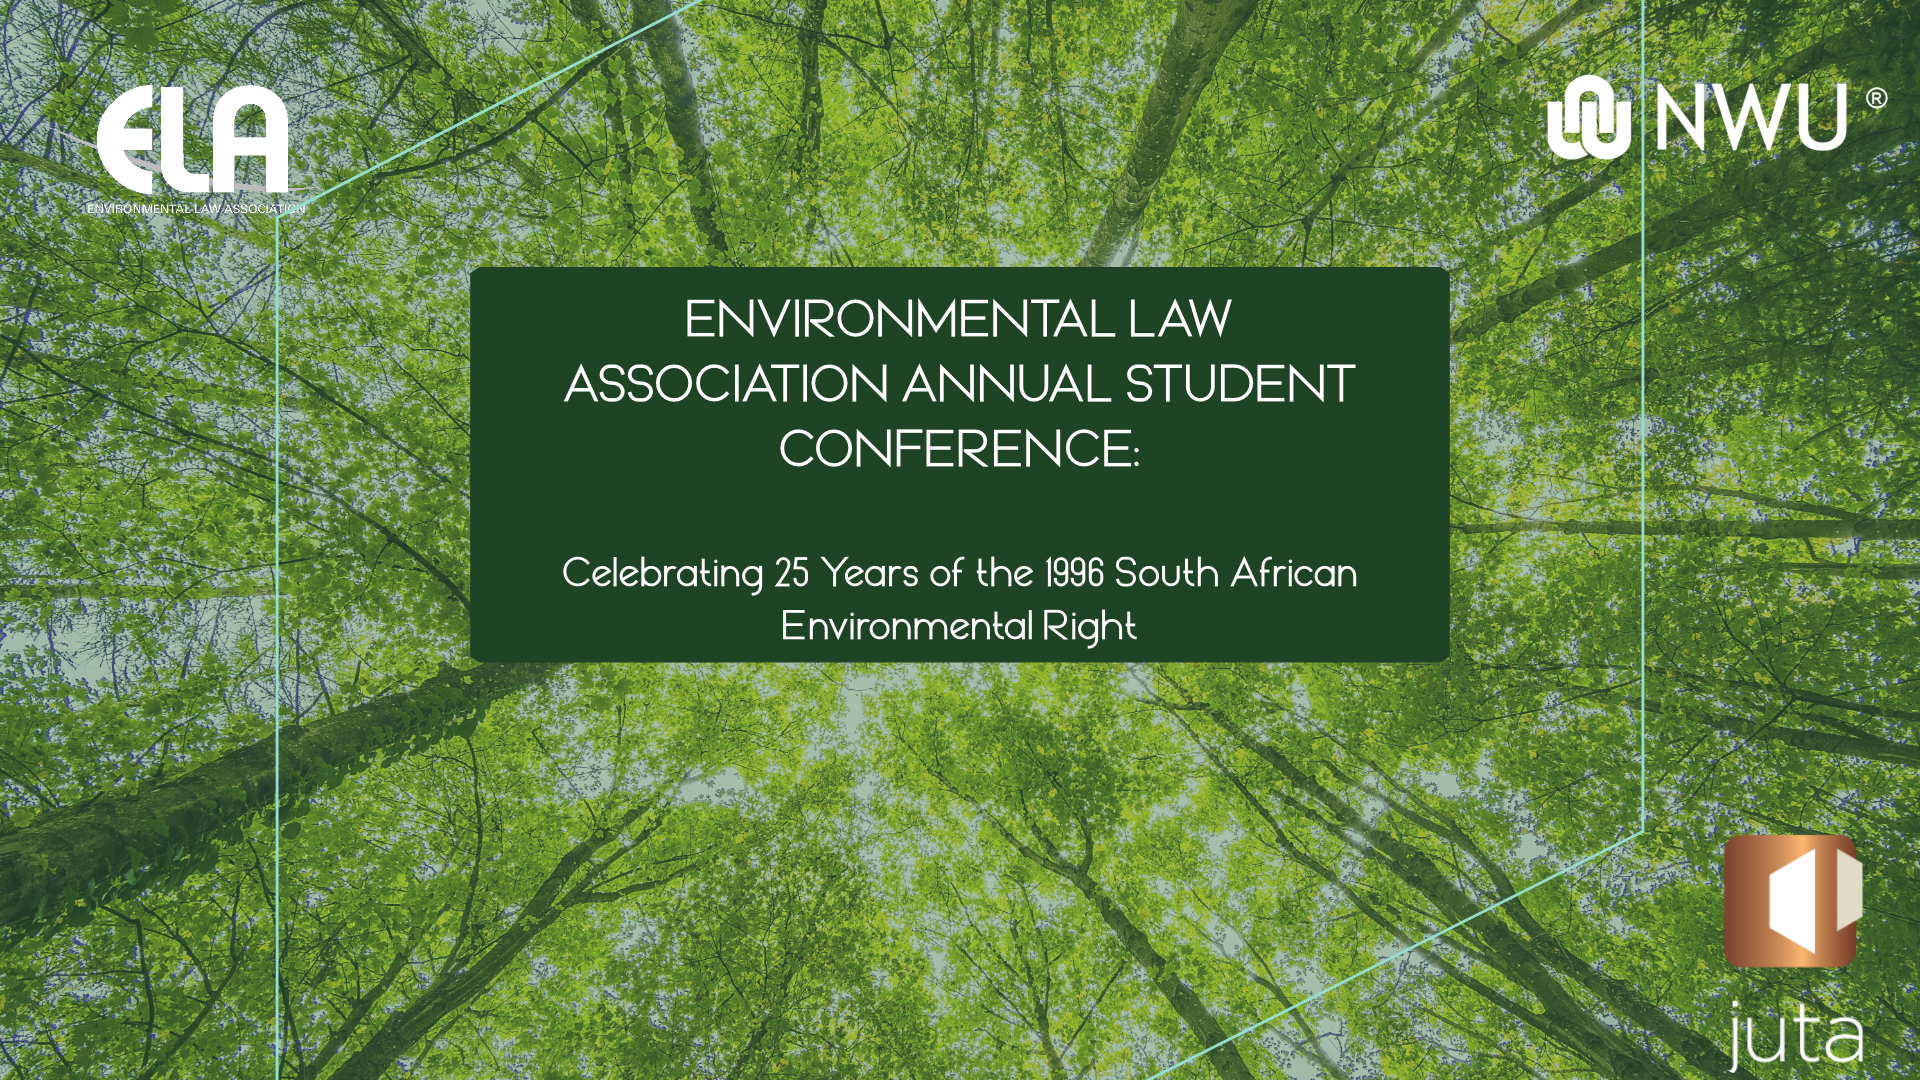 2021 Student Conference: Celebrating 25 Years of the 1996 South African Environmental Right